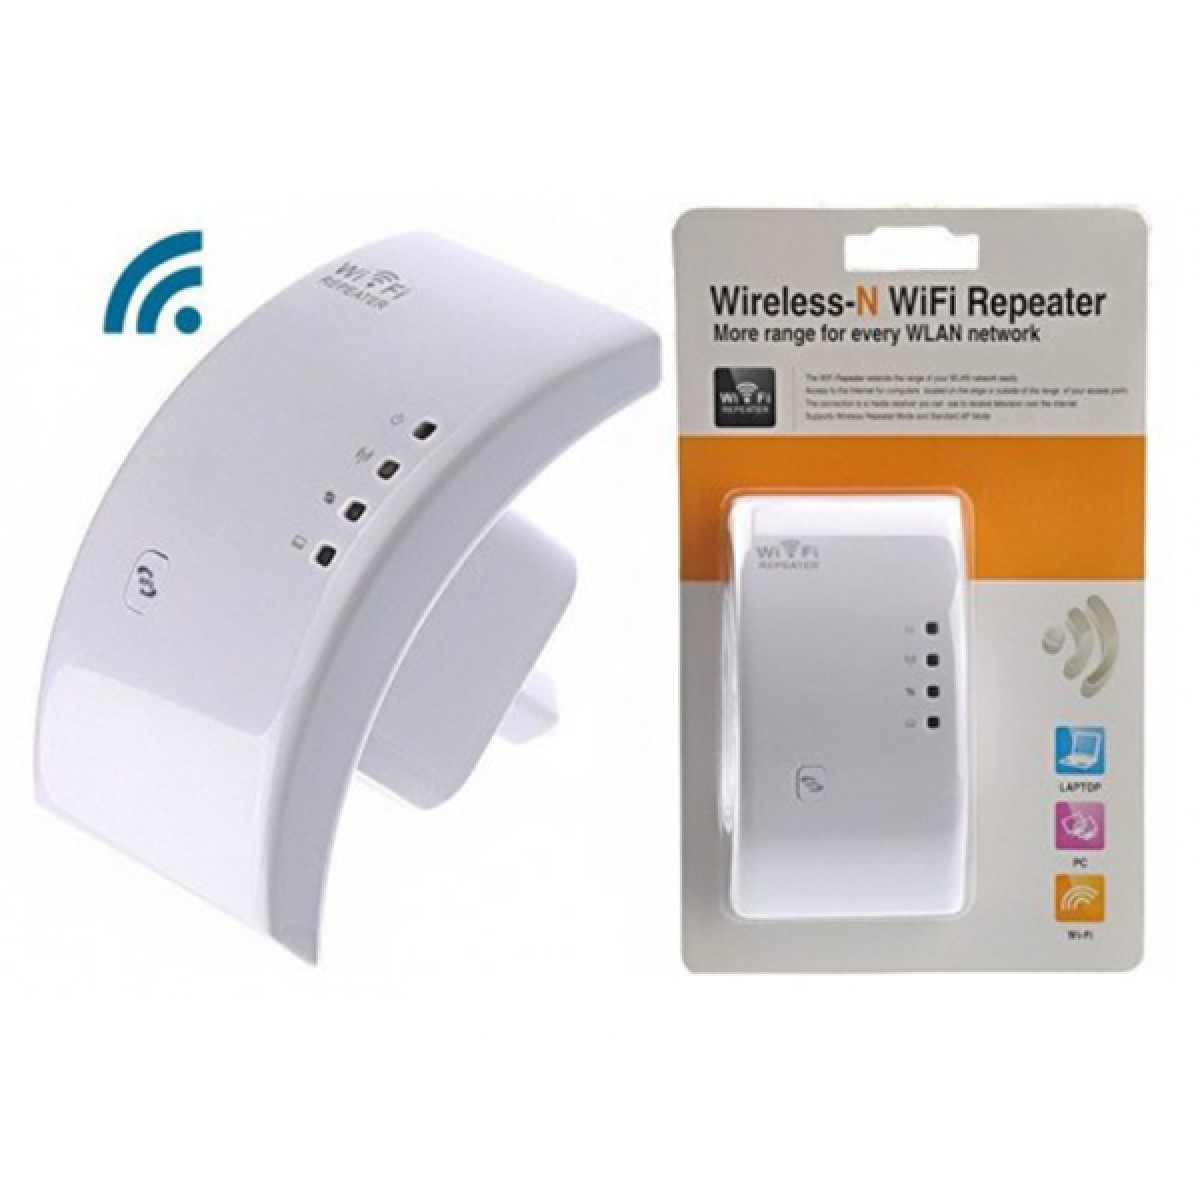 VT-WN518W2 300MBPS WIRELESS-N WIFI REPEATER ΛΕΥΚΌ